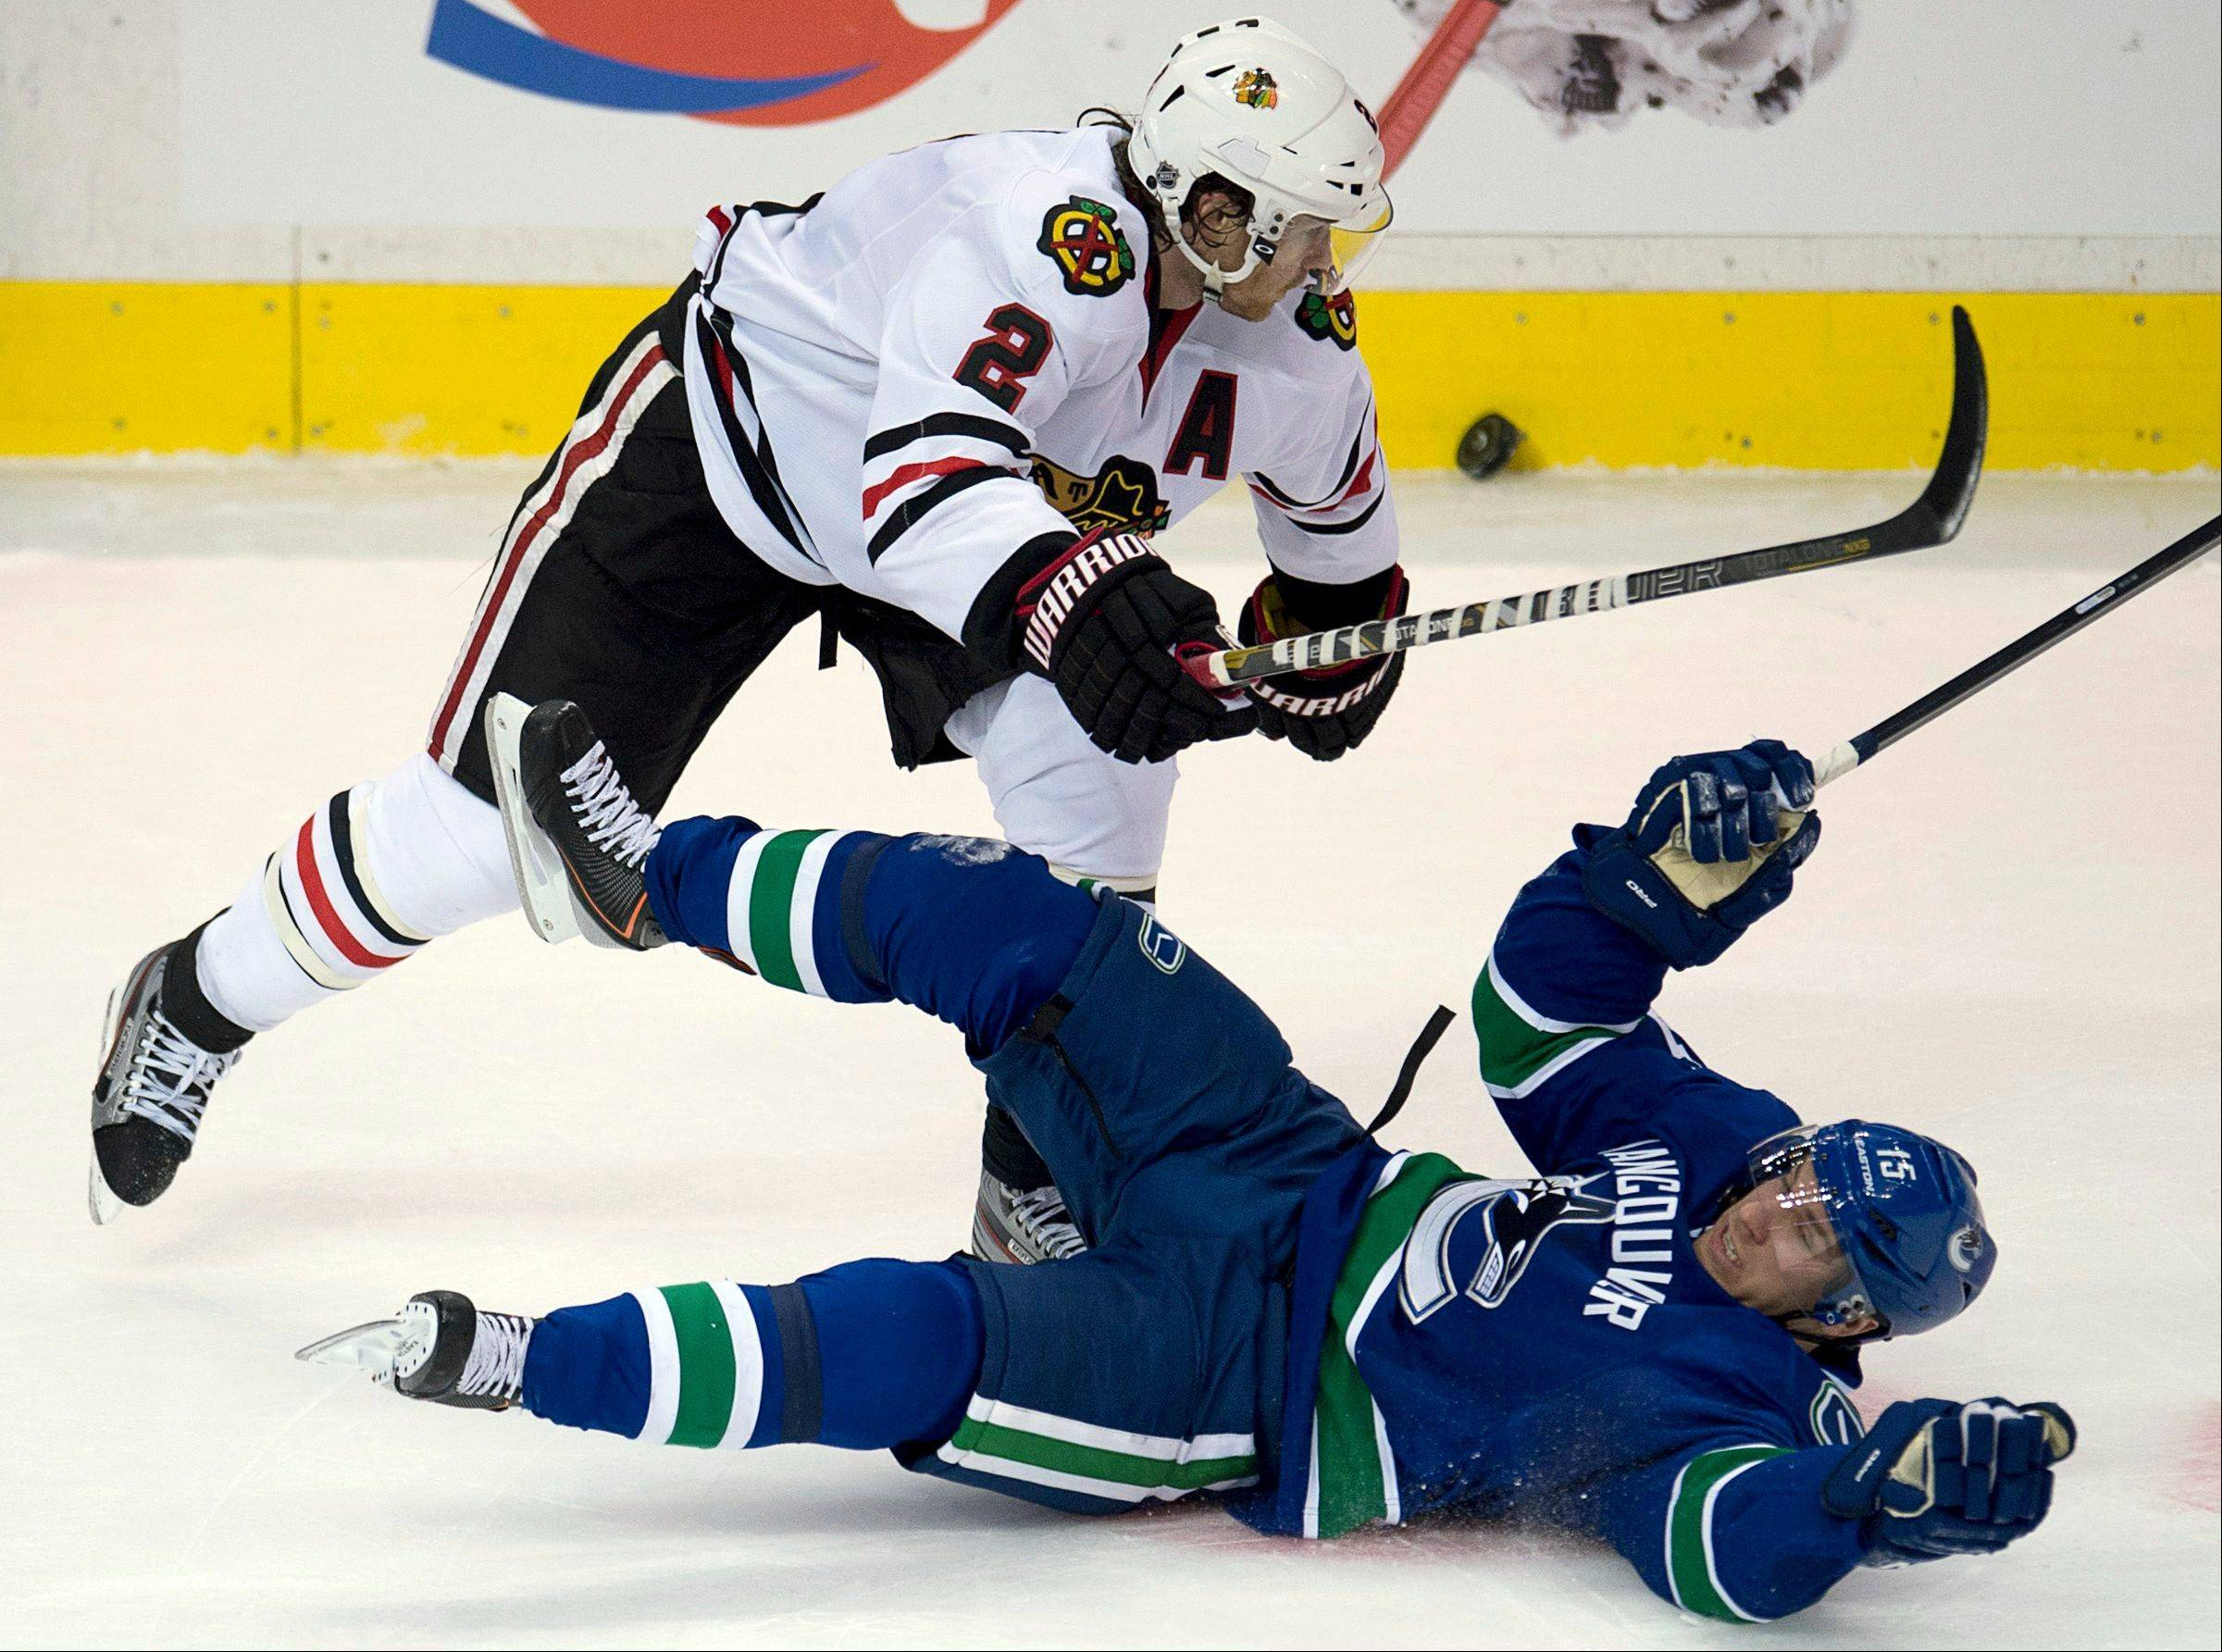 Vancouver Canucks center Derek Roy (15) fights for control of the puck with Chicago Blackhawks defenseman Duncan Keith (2) during the second period of their NHL hockey game in Vancouver, British Columbia, Monday, April 22, 2013.